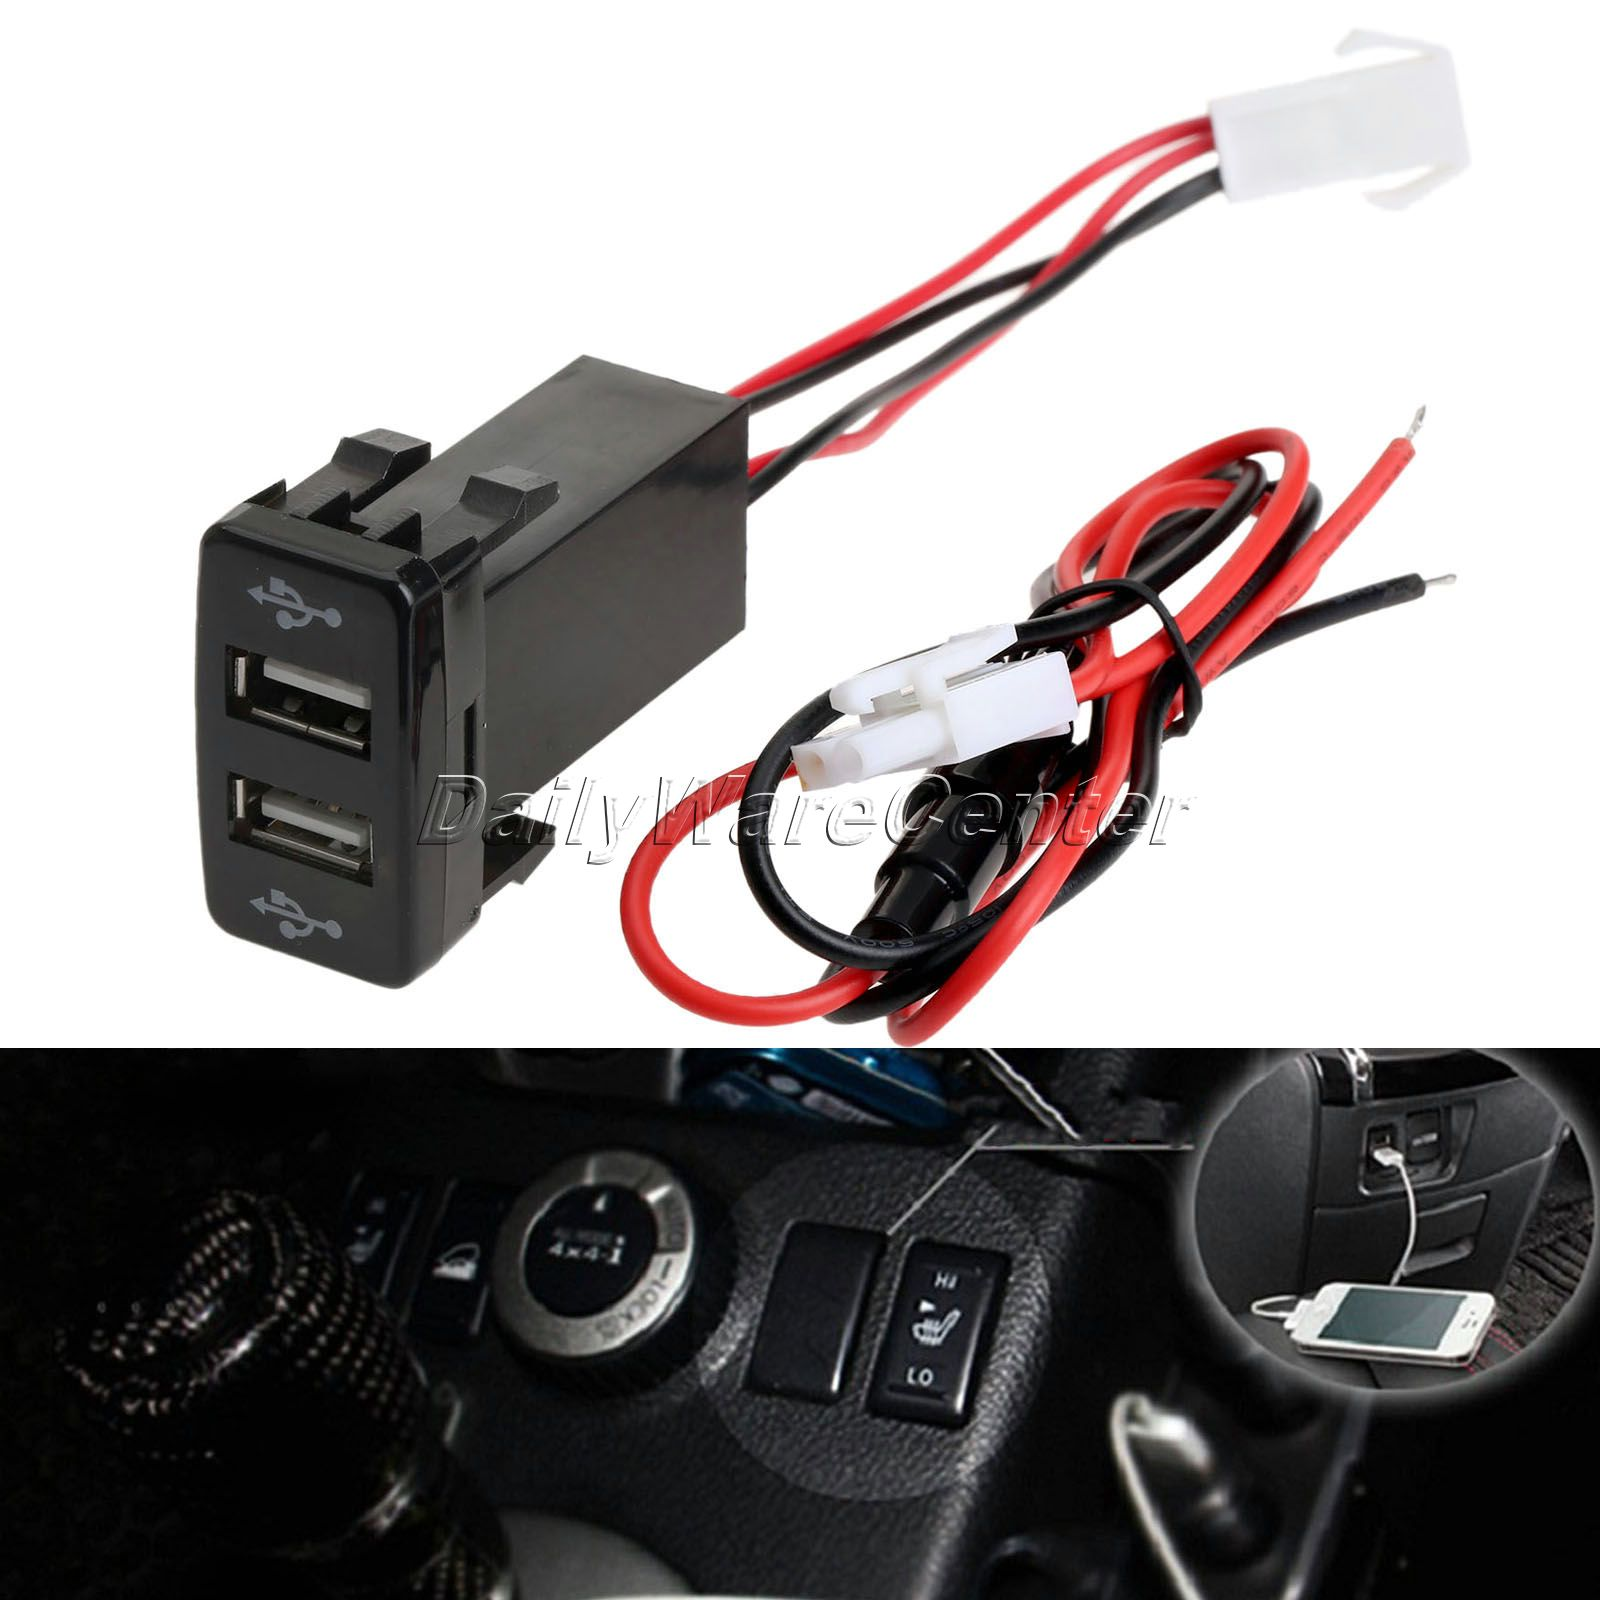 12v 2.1a Car Auto Dual Usb Port Charger Adapter Pda Dvr Audio Input For Toyota Vigo Mobile Phone Dashboard Mount Car Accessories Rich And Magnificent